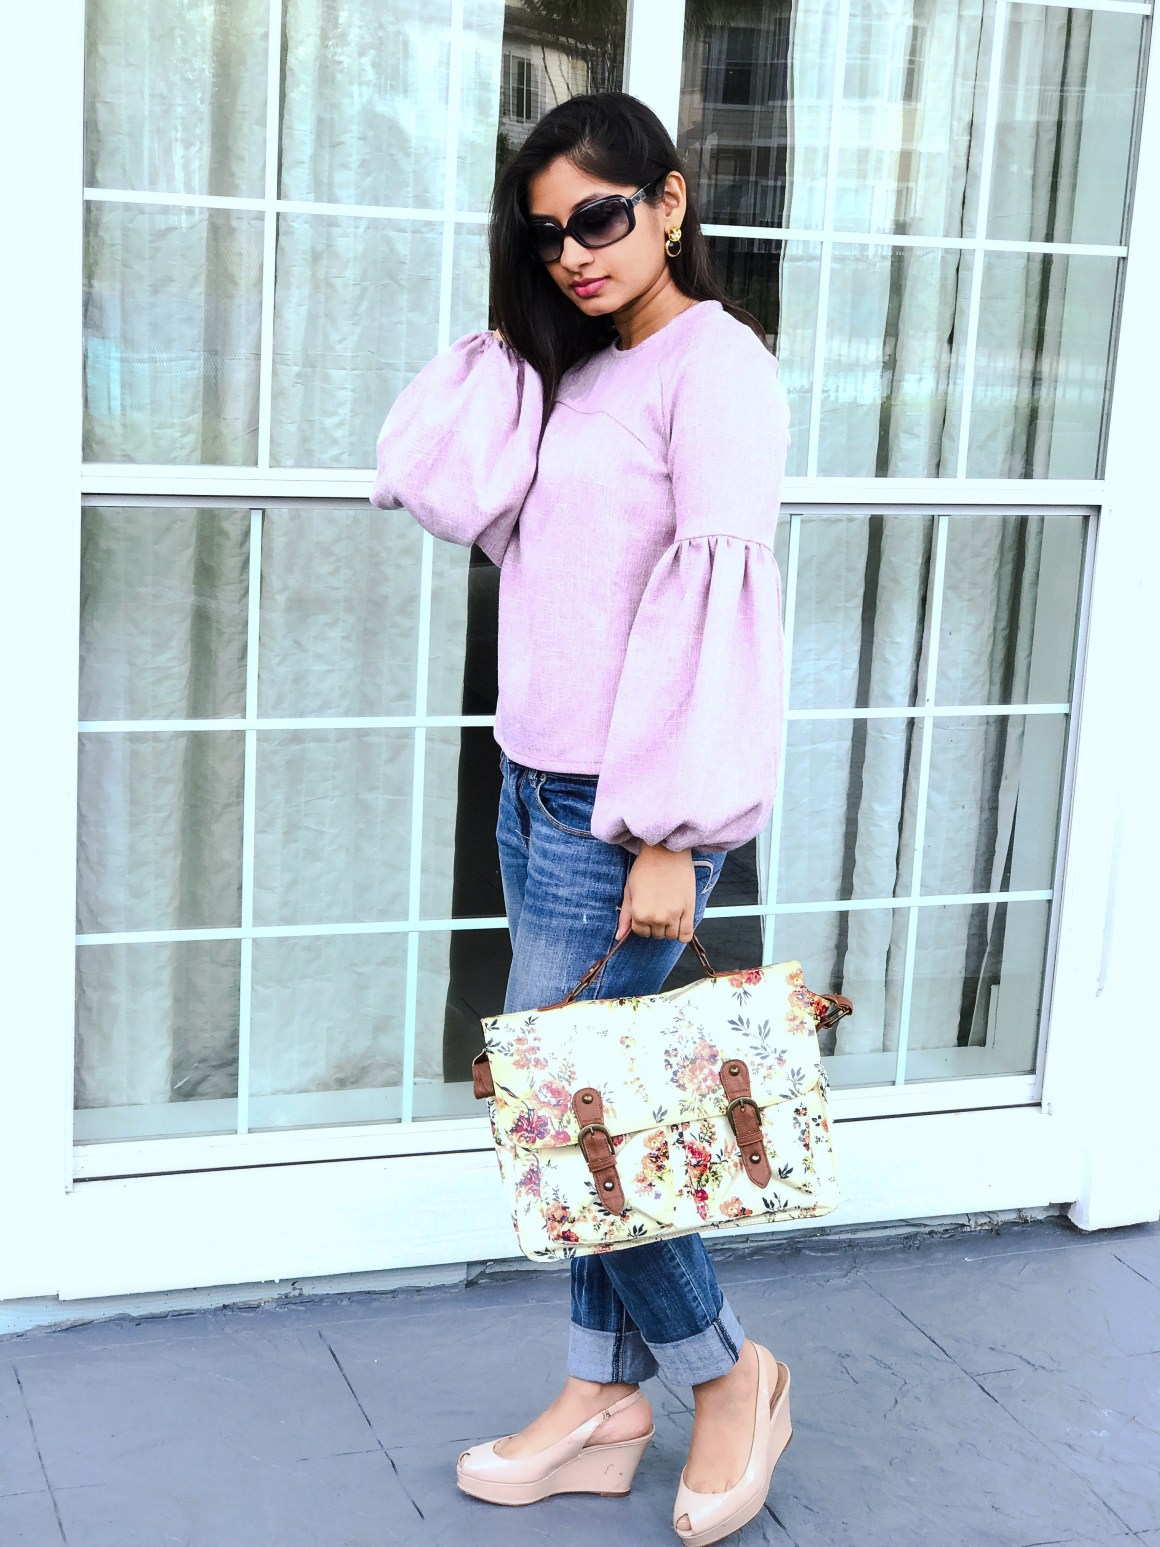 Dramatic Sleeves - Shein top, Emporio Armani sunglasses, American Eagle jeans Primark floral bag, Zara wedges.